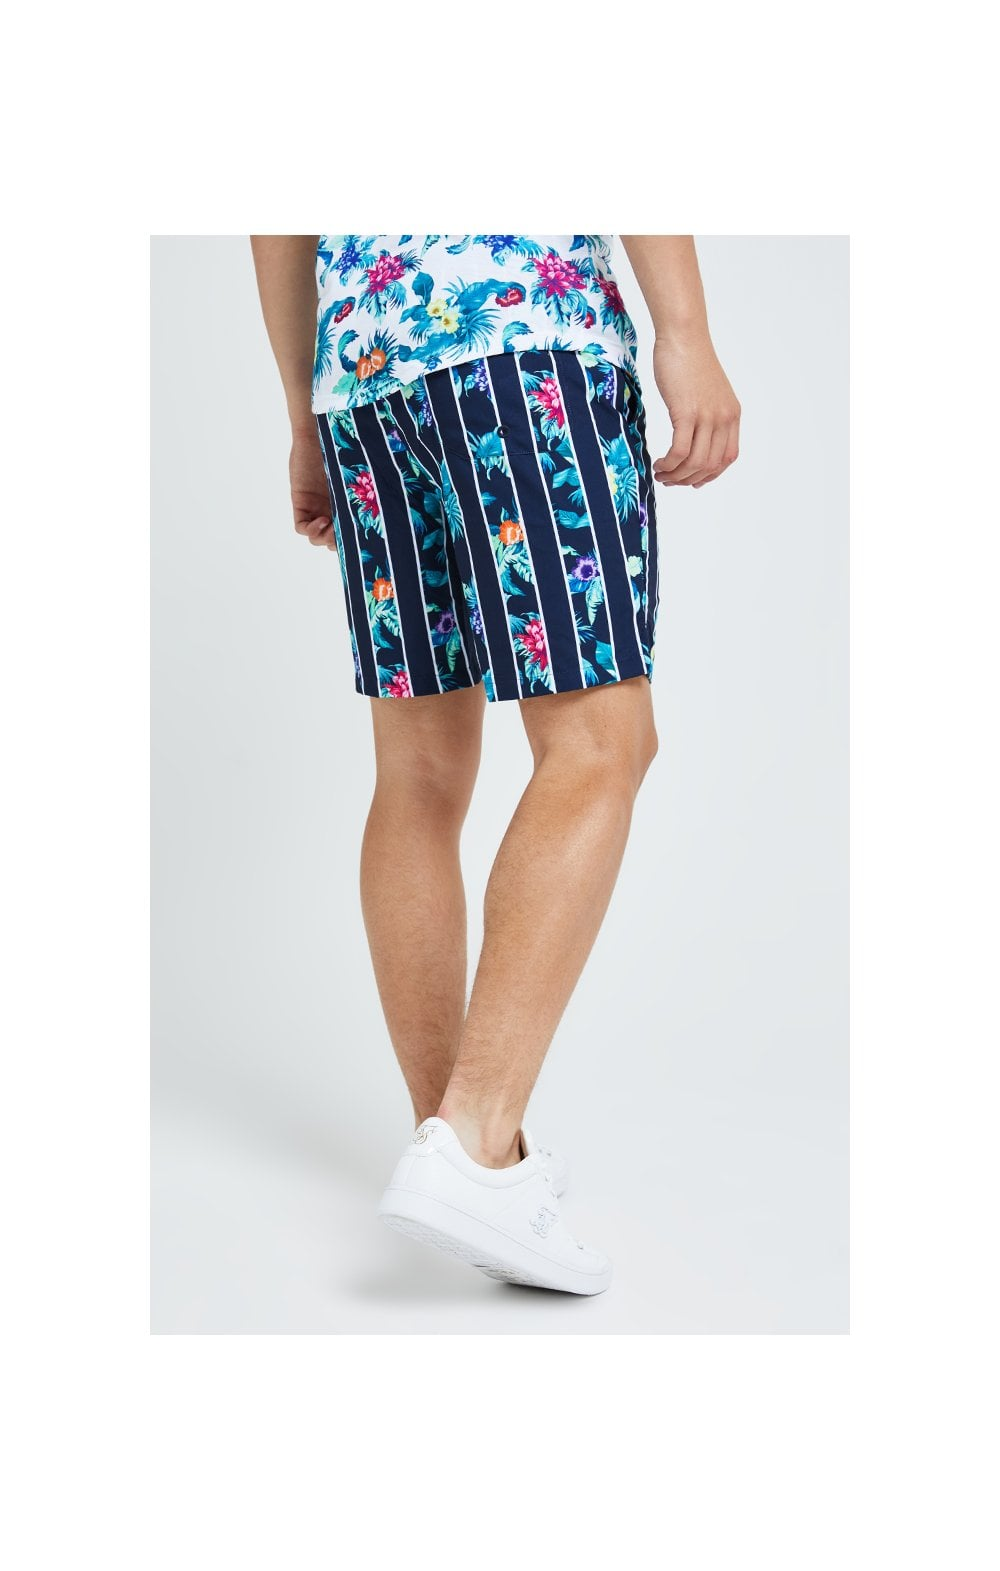 Illusive London Floral Stripe Swim Shorts - Navy & Floral (2)